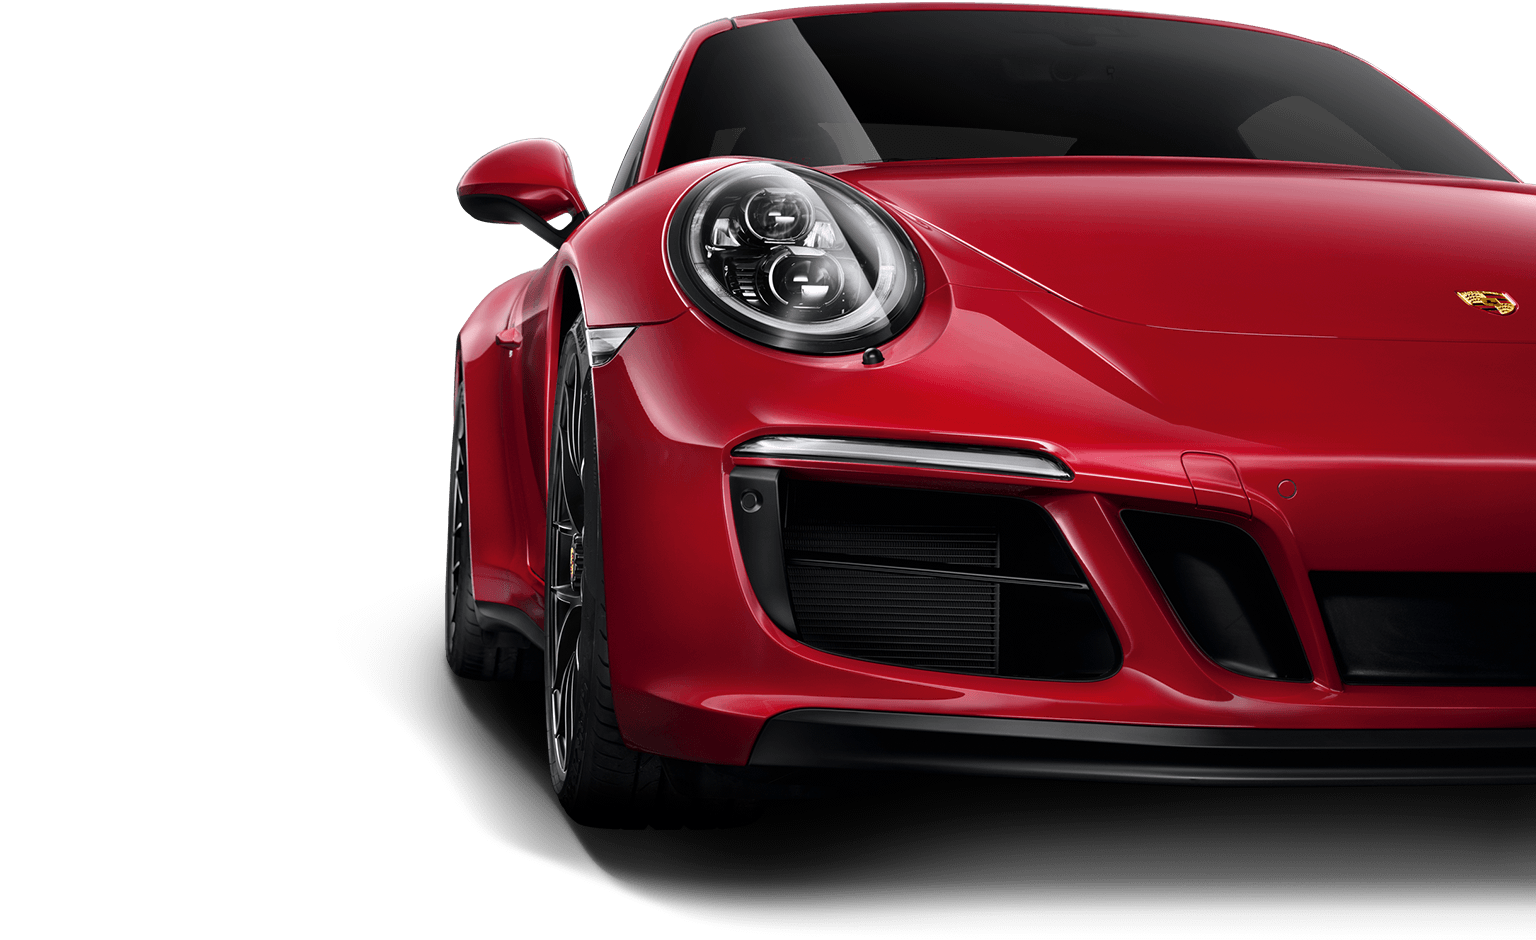 Driven by inner motivation. - The new 911 GTS models.